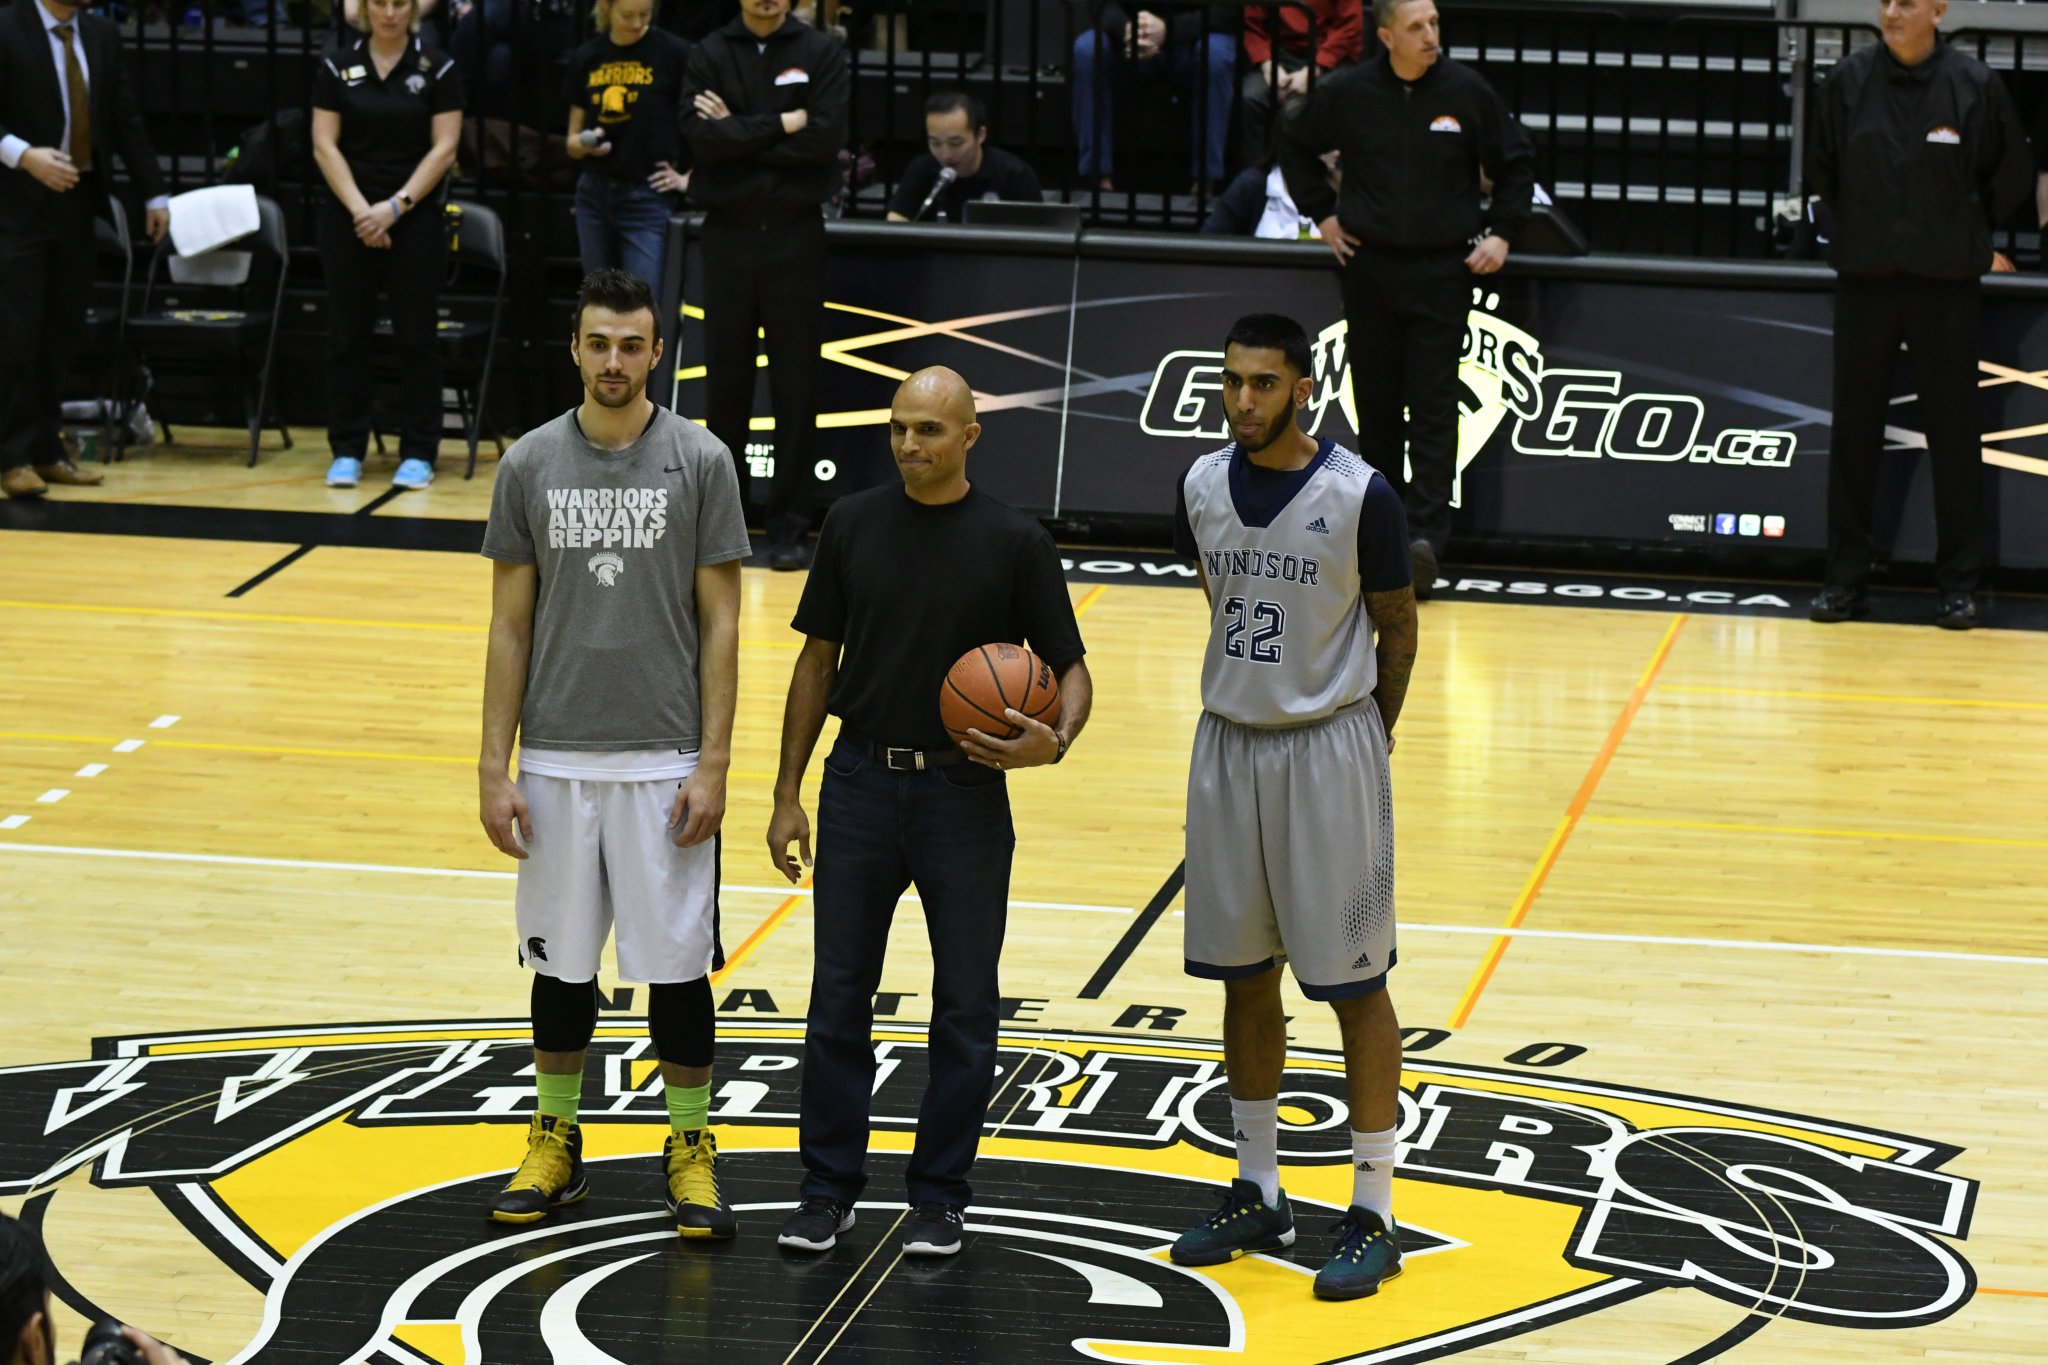 Fun times at #UWaterlooFAD.  @manowatsa with the ceremonial tipoff before the @WlooWarriors @WindsorLancers mens basketball game. https://t.co/i0MIJ05JVO